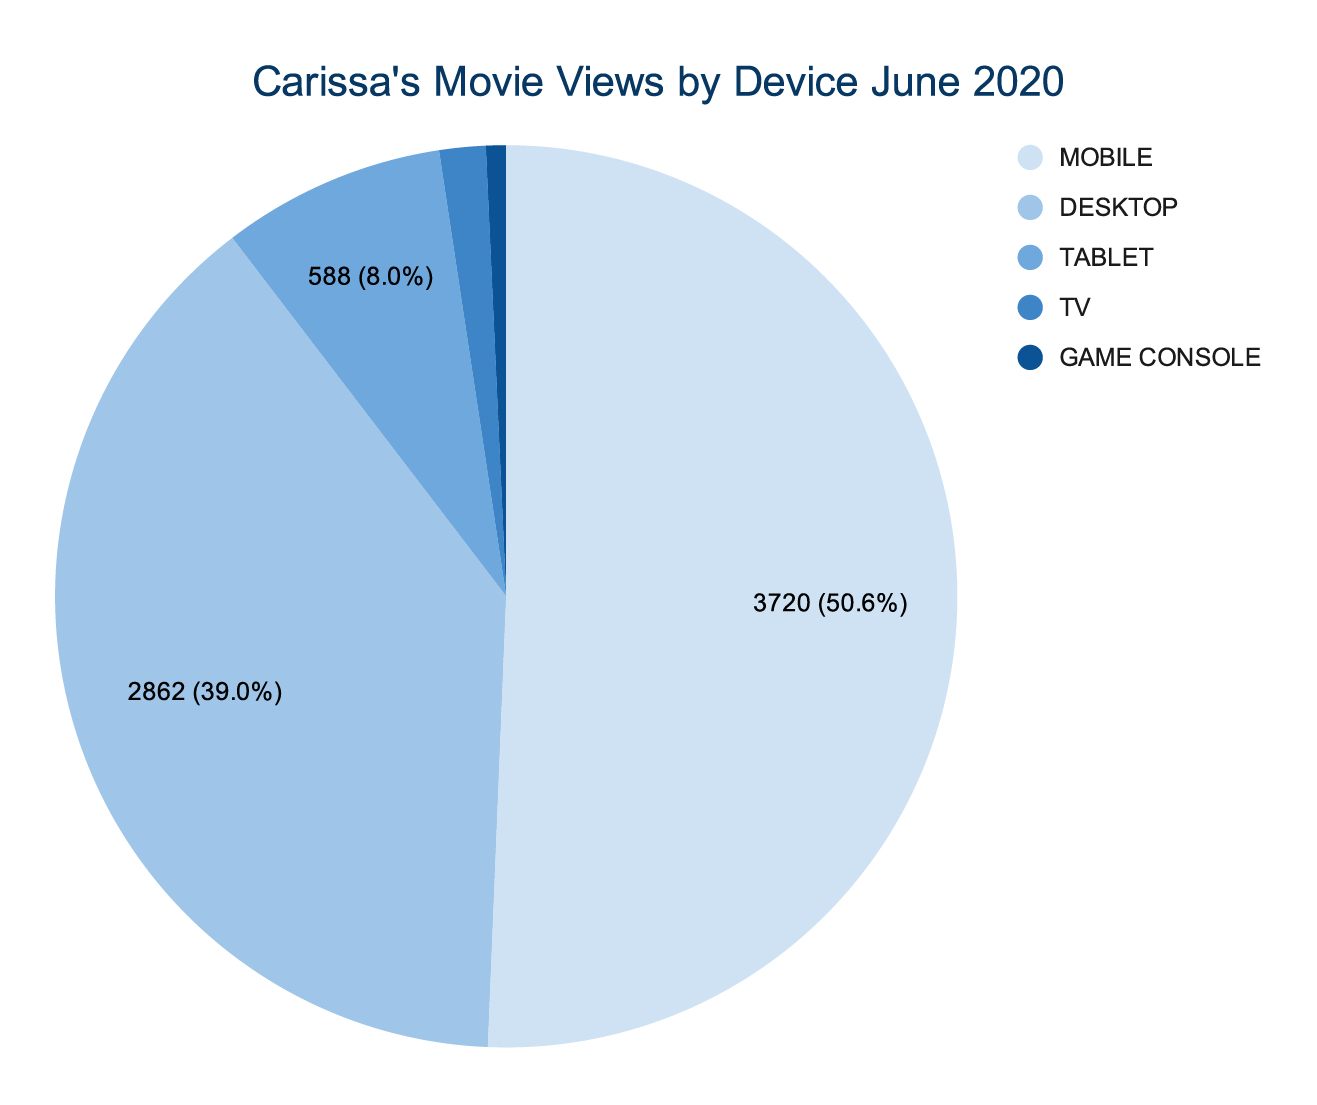 This pie chart breaks down what device the total 7,345 viewers were using. 3720 were from mobile devices, 2862 were from desktops, 588 were from tablets, 122 were from TVs and 53 were from game consoles.